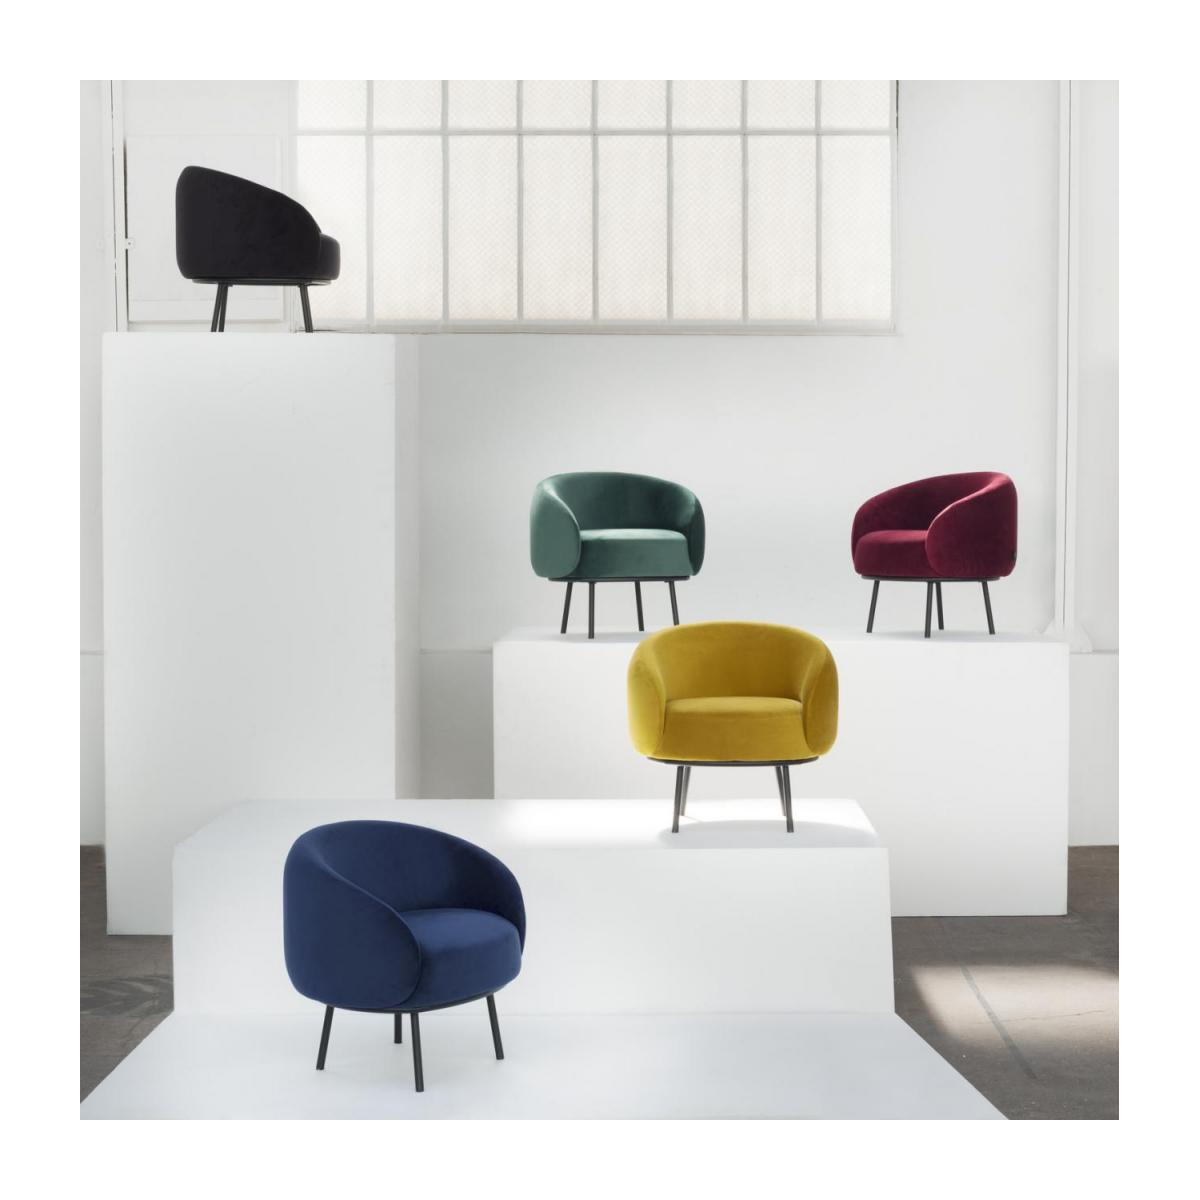 Fauteuil en velours - Lie-de-vin  - Design by Adrien Carvès n°8